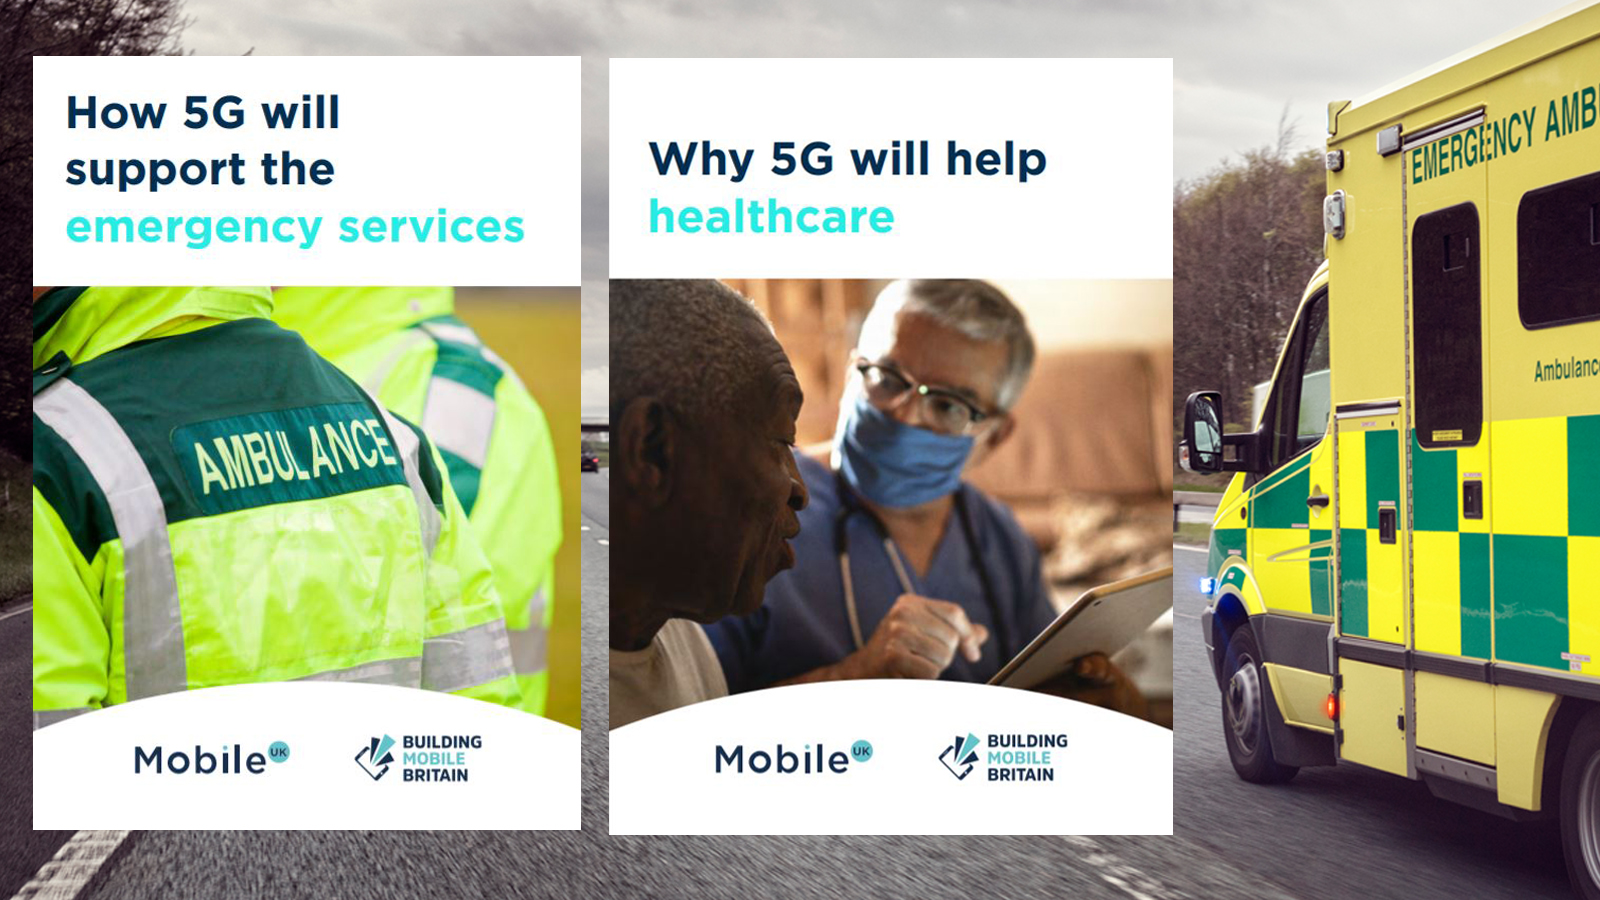 Emergency Services, Health, Healthcare, 5G, Mobile. #5GCheckTheFacts